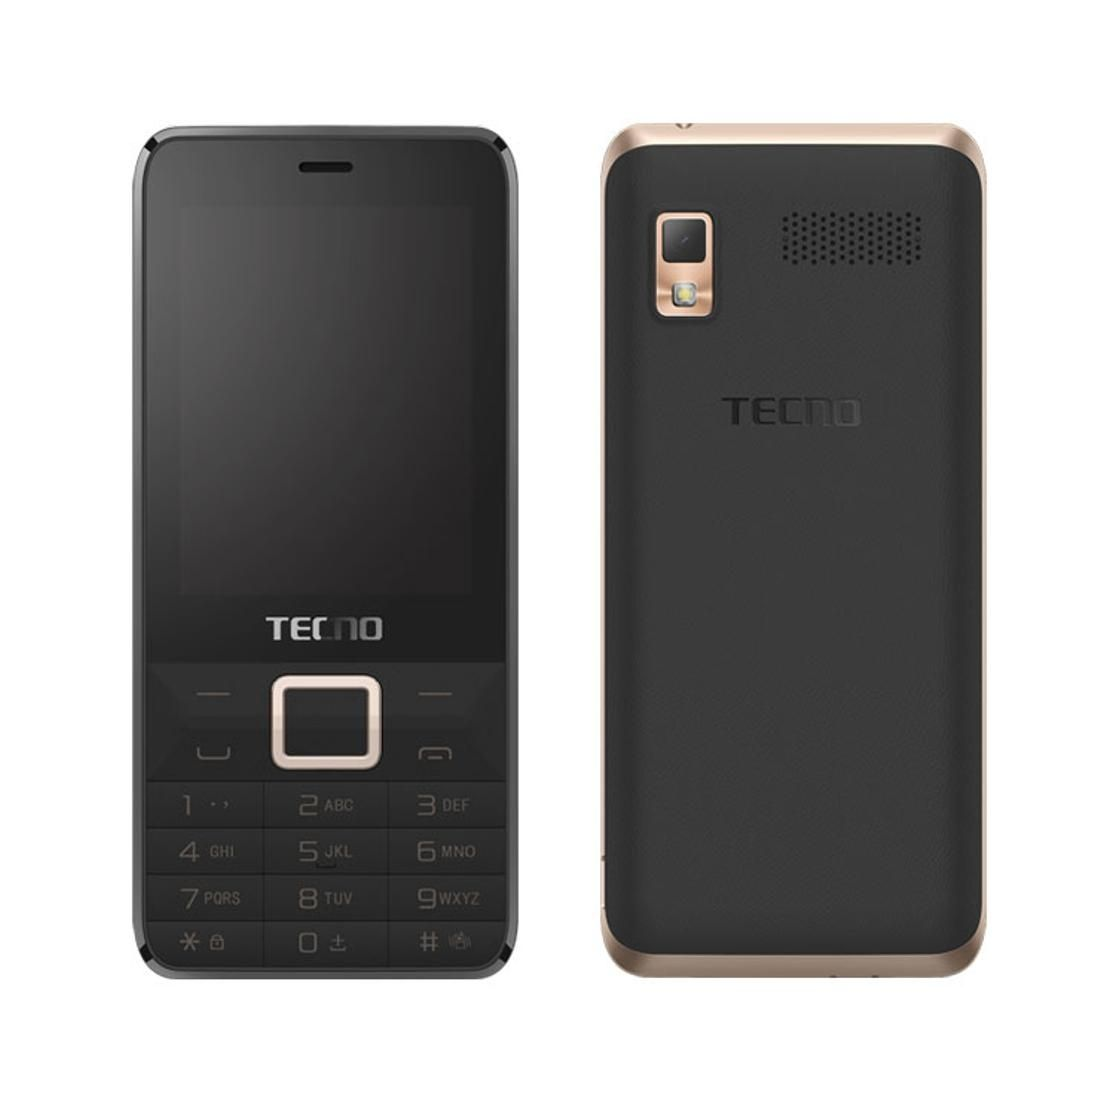 Tecno T472 - Dual SIM Mobile Phone - Gold Price in Egypt